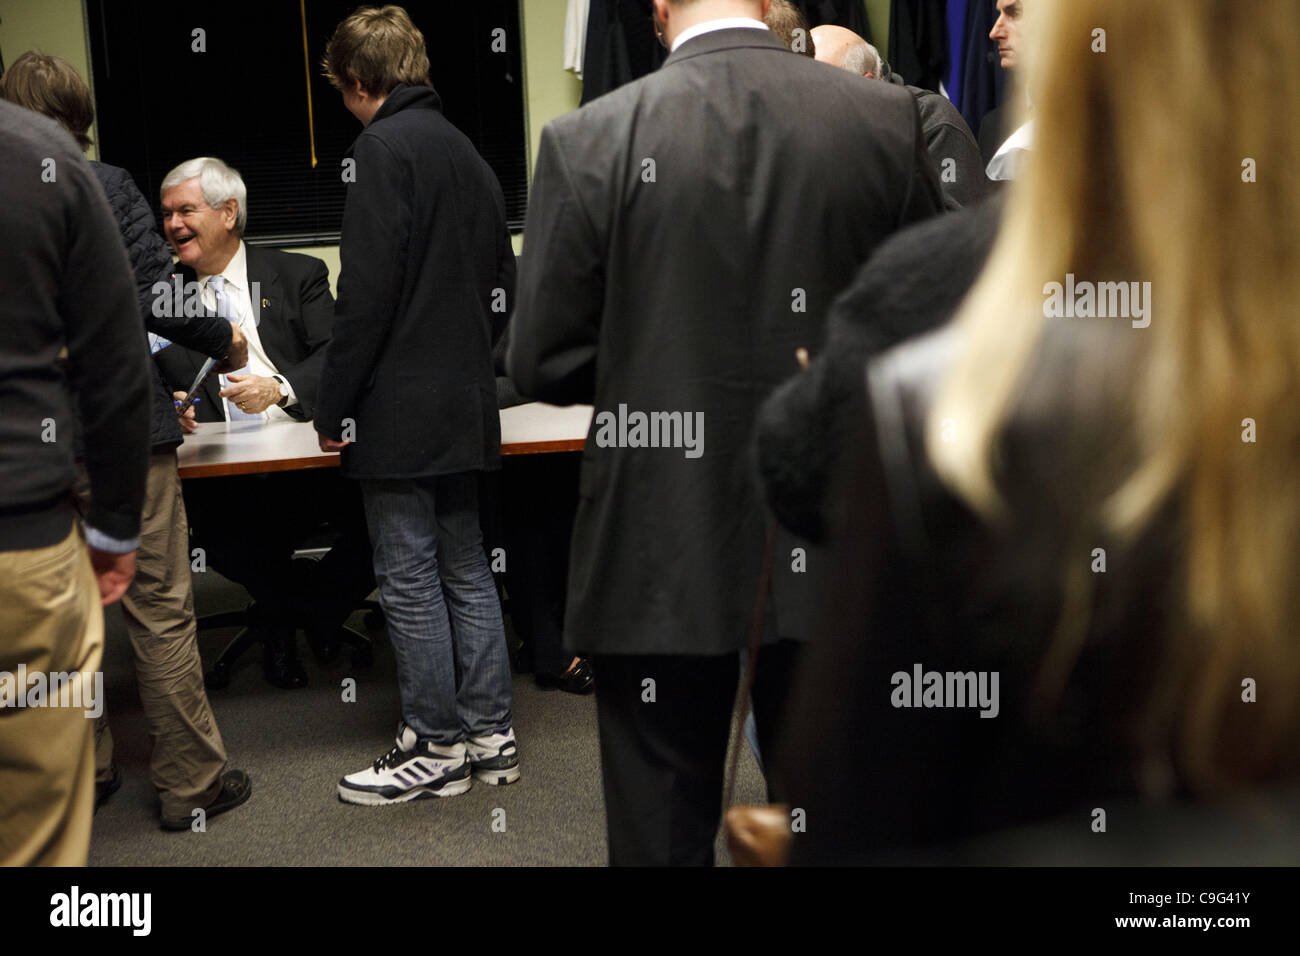 Dec. 19, 2011 - Hiawatha, Iowa, U.S. - Republican presidential candidate NEWT GINGRICH socializes as he signs an - Stock Image